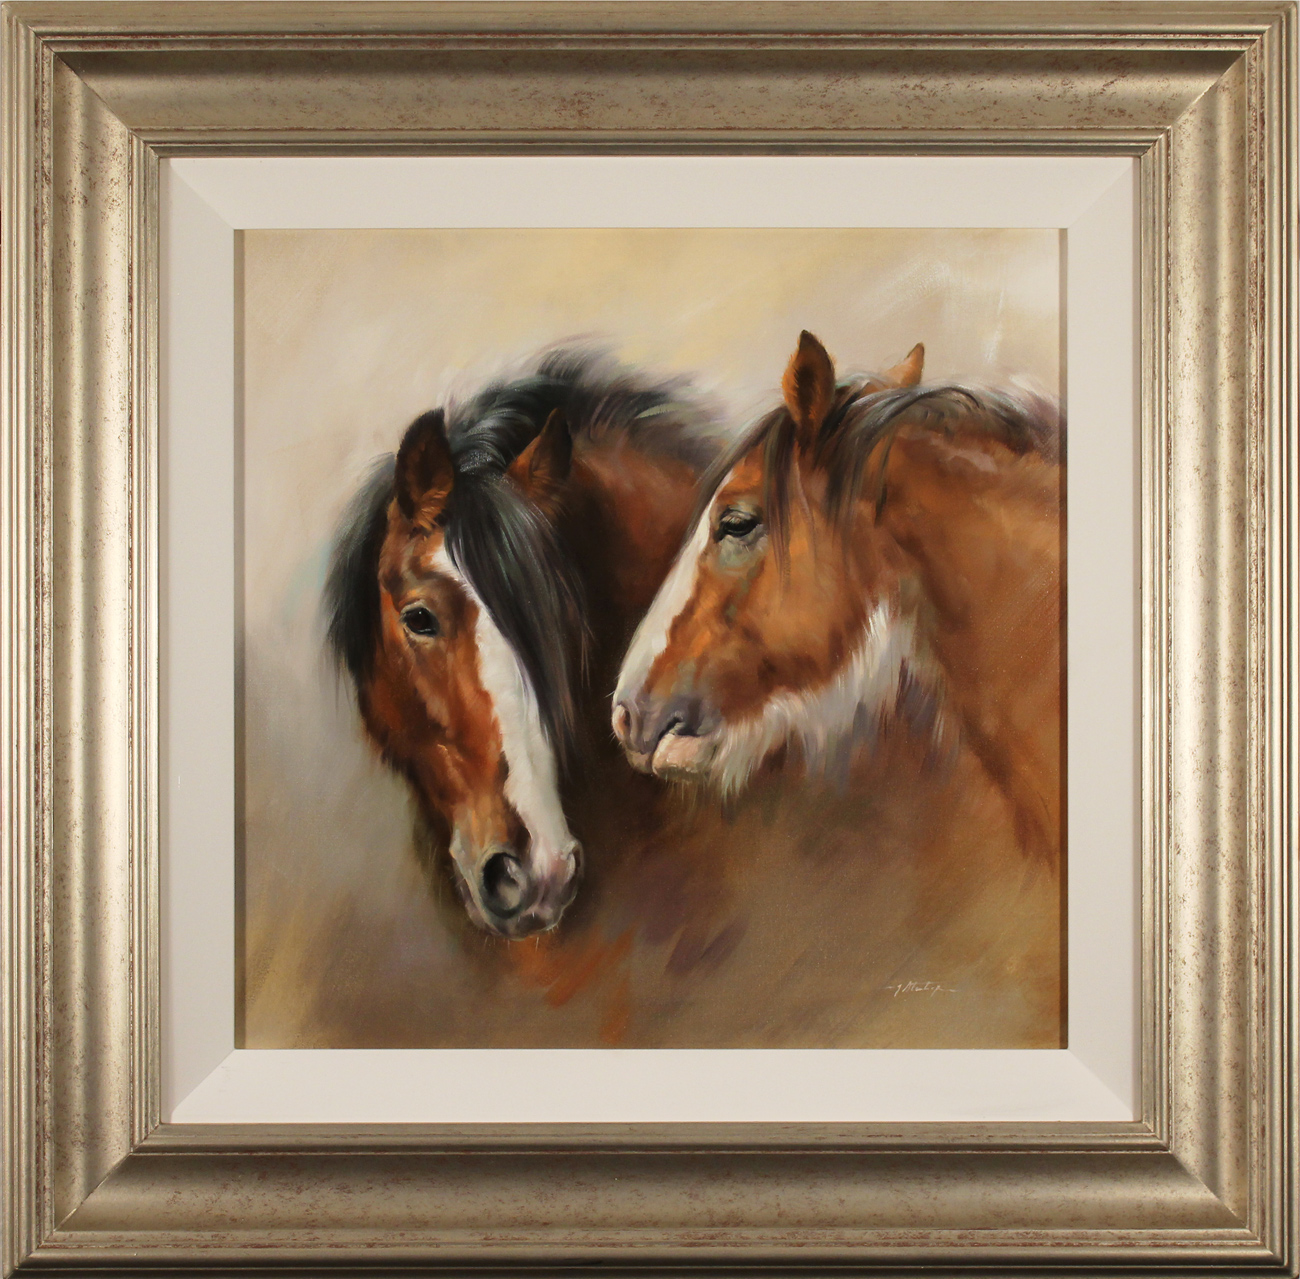 Jacqueline Stanhope, Original oil painting on canvas, Shire Horses. Click to enlarge